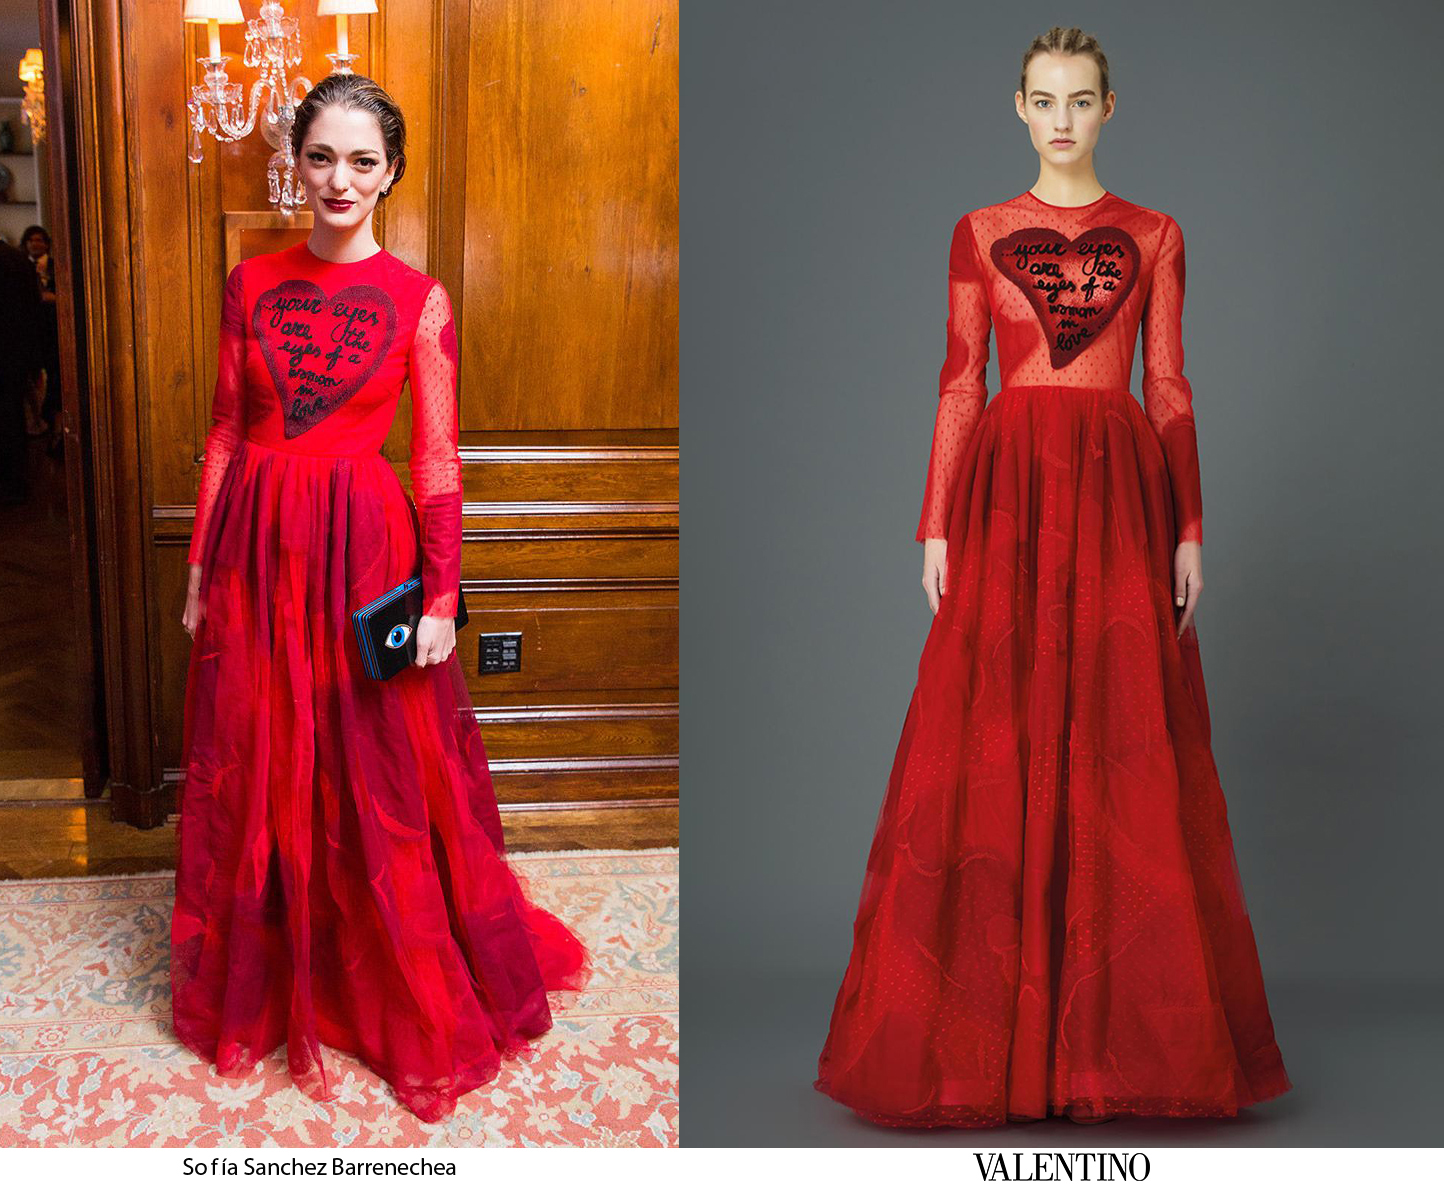 Sofia-Sanchez-Barrenechea-MadGala-Valentino-Fall-2015-Red-Heart-Gown.jpg